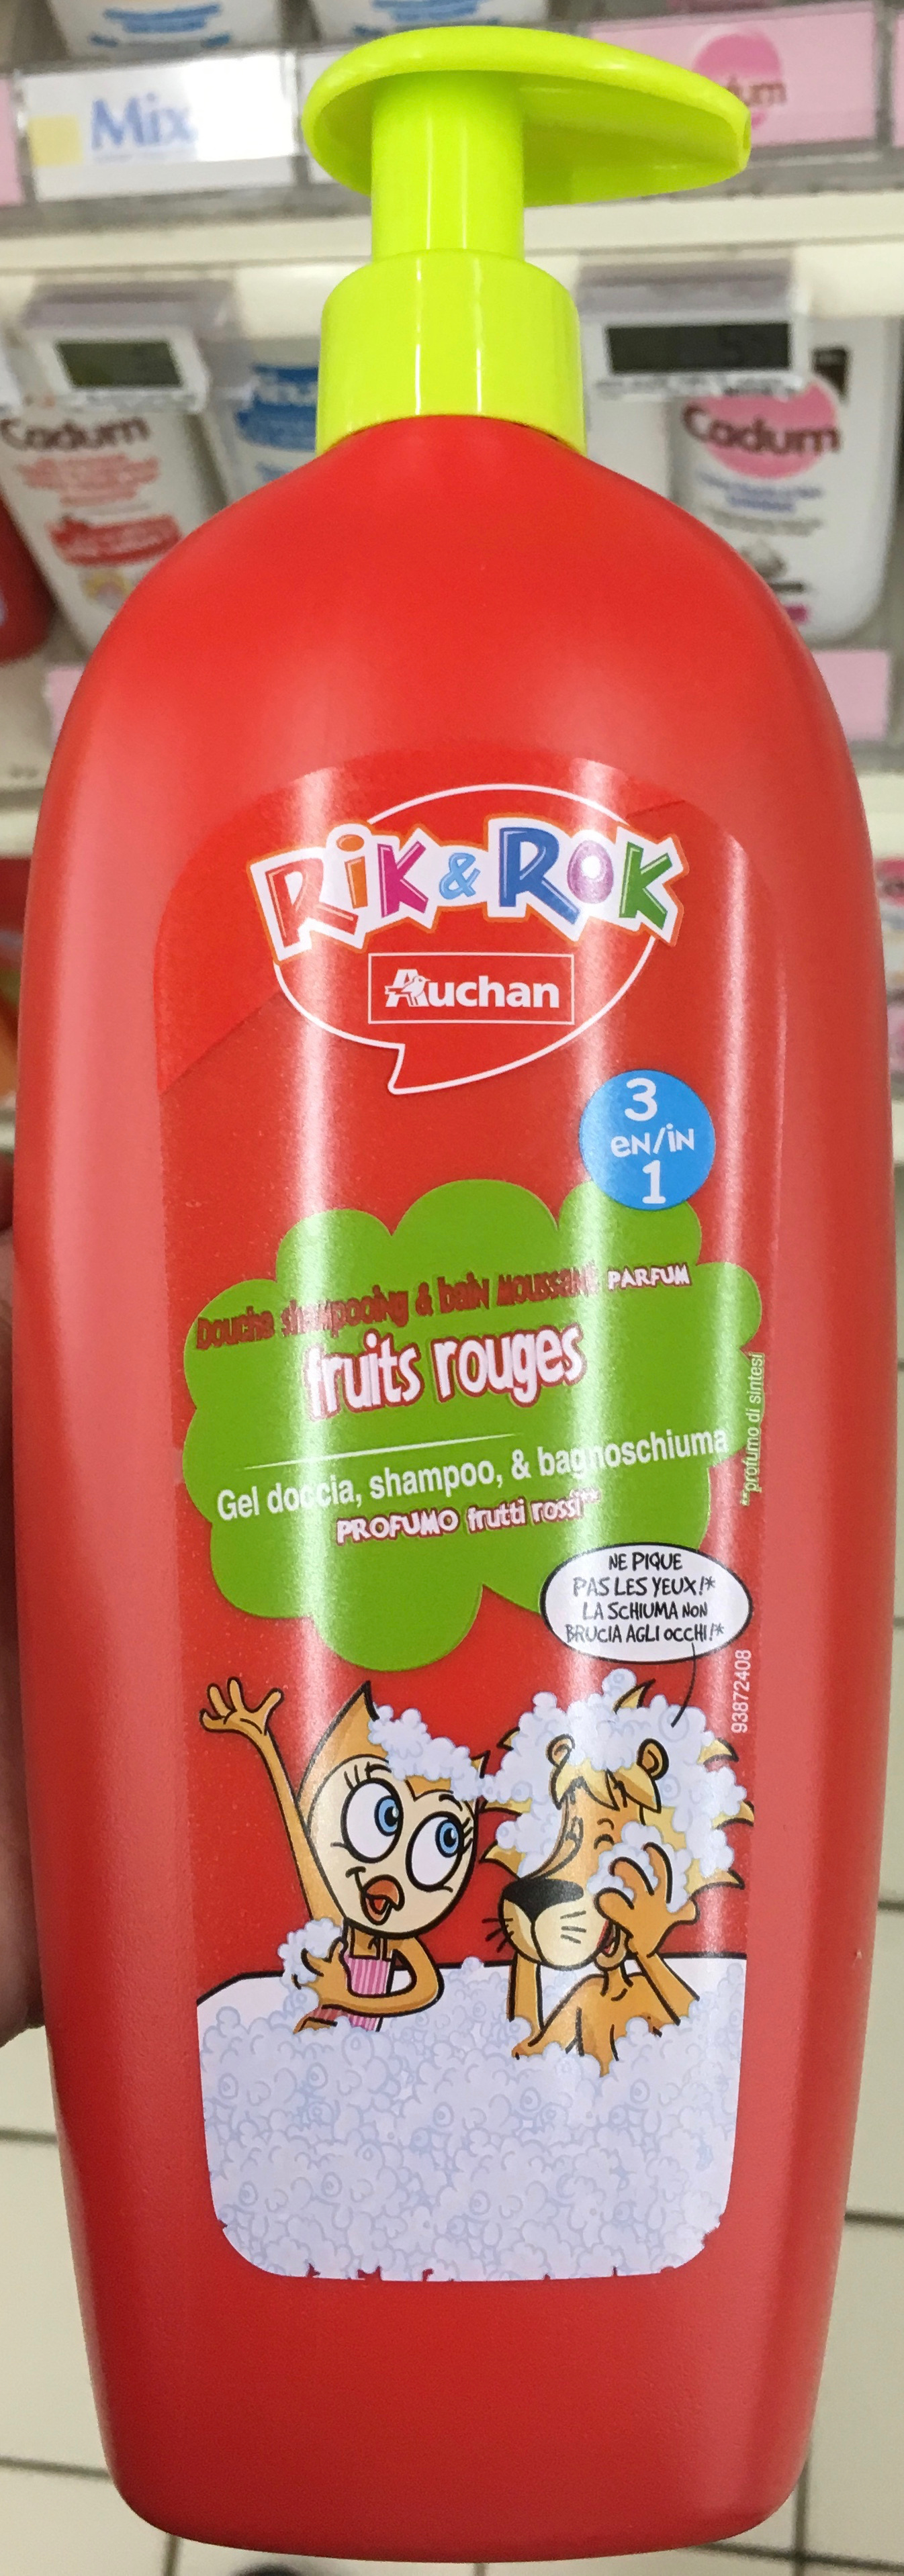 Rik & Rok douche shampoing et bain moussant fruits rouges - Product